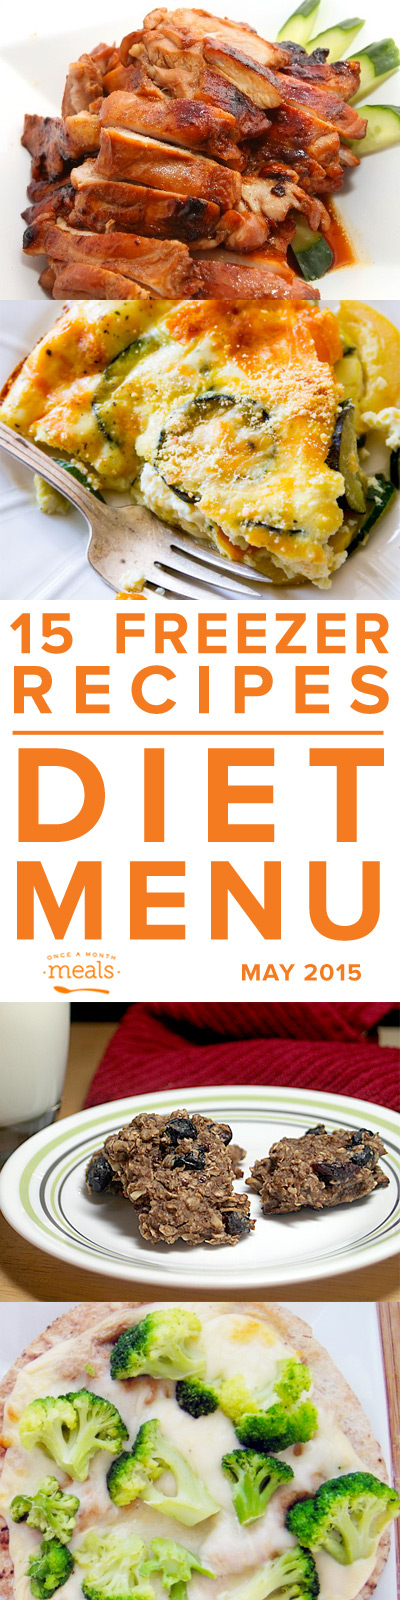 Diet May 2015 | Once a Month Meals | Freezer Cooking | Freezer Meals | Custom Menus | Menu Planning | WW Friendly